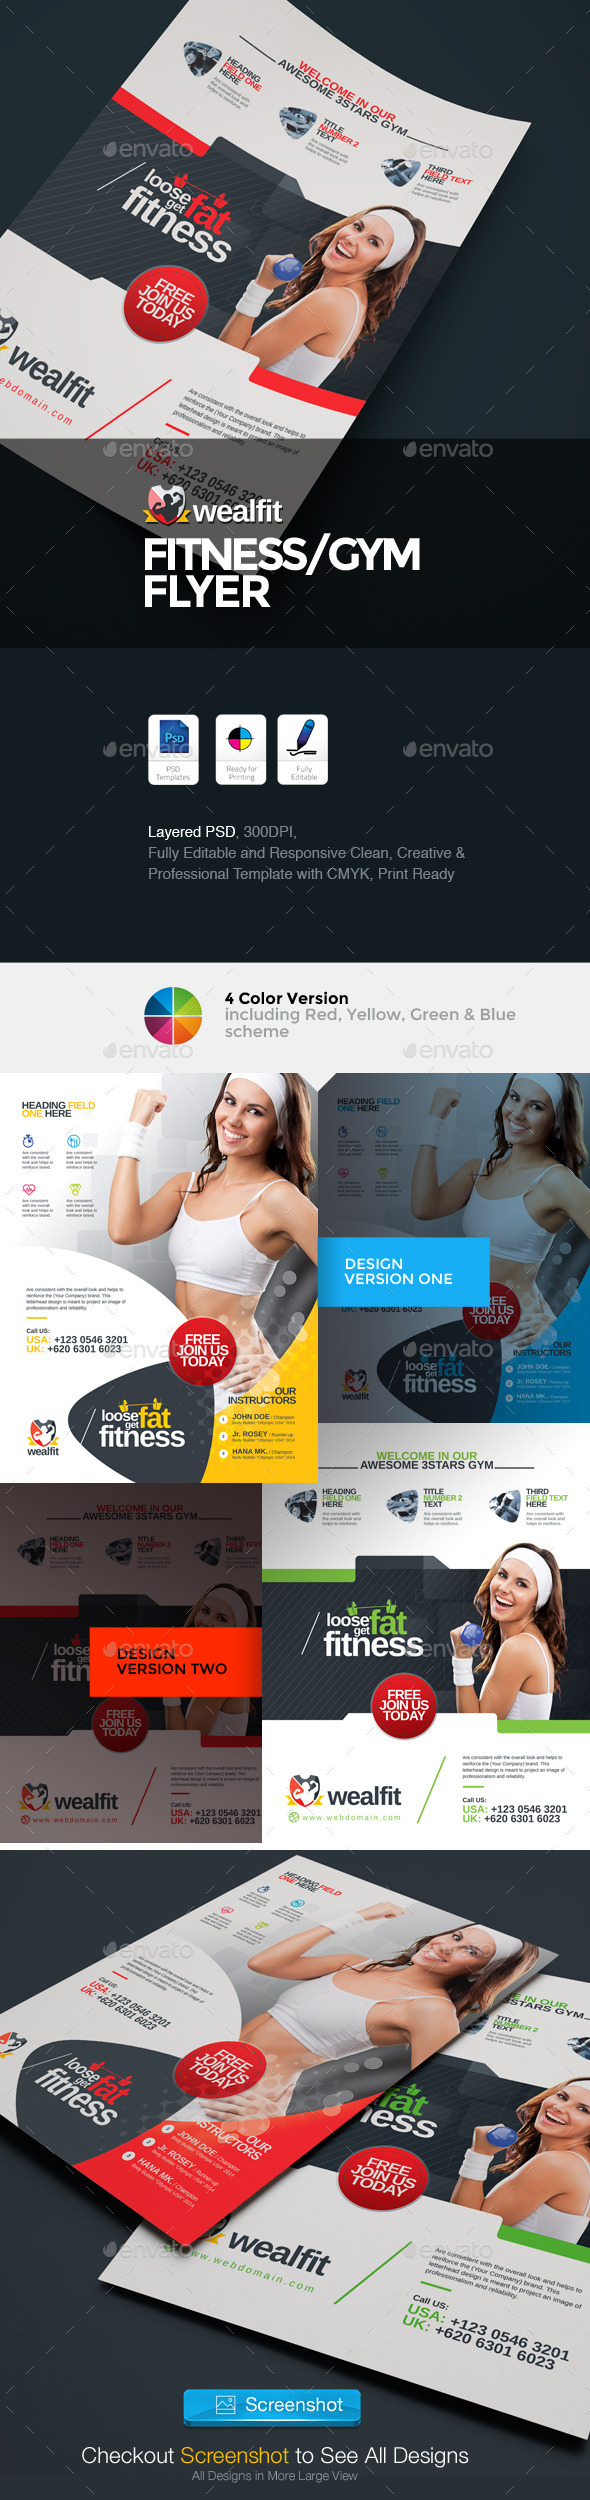 GraphicRiver WealFit Fitness Gym Flyer 10065074